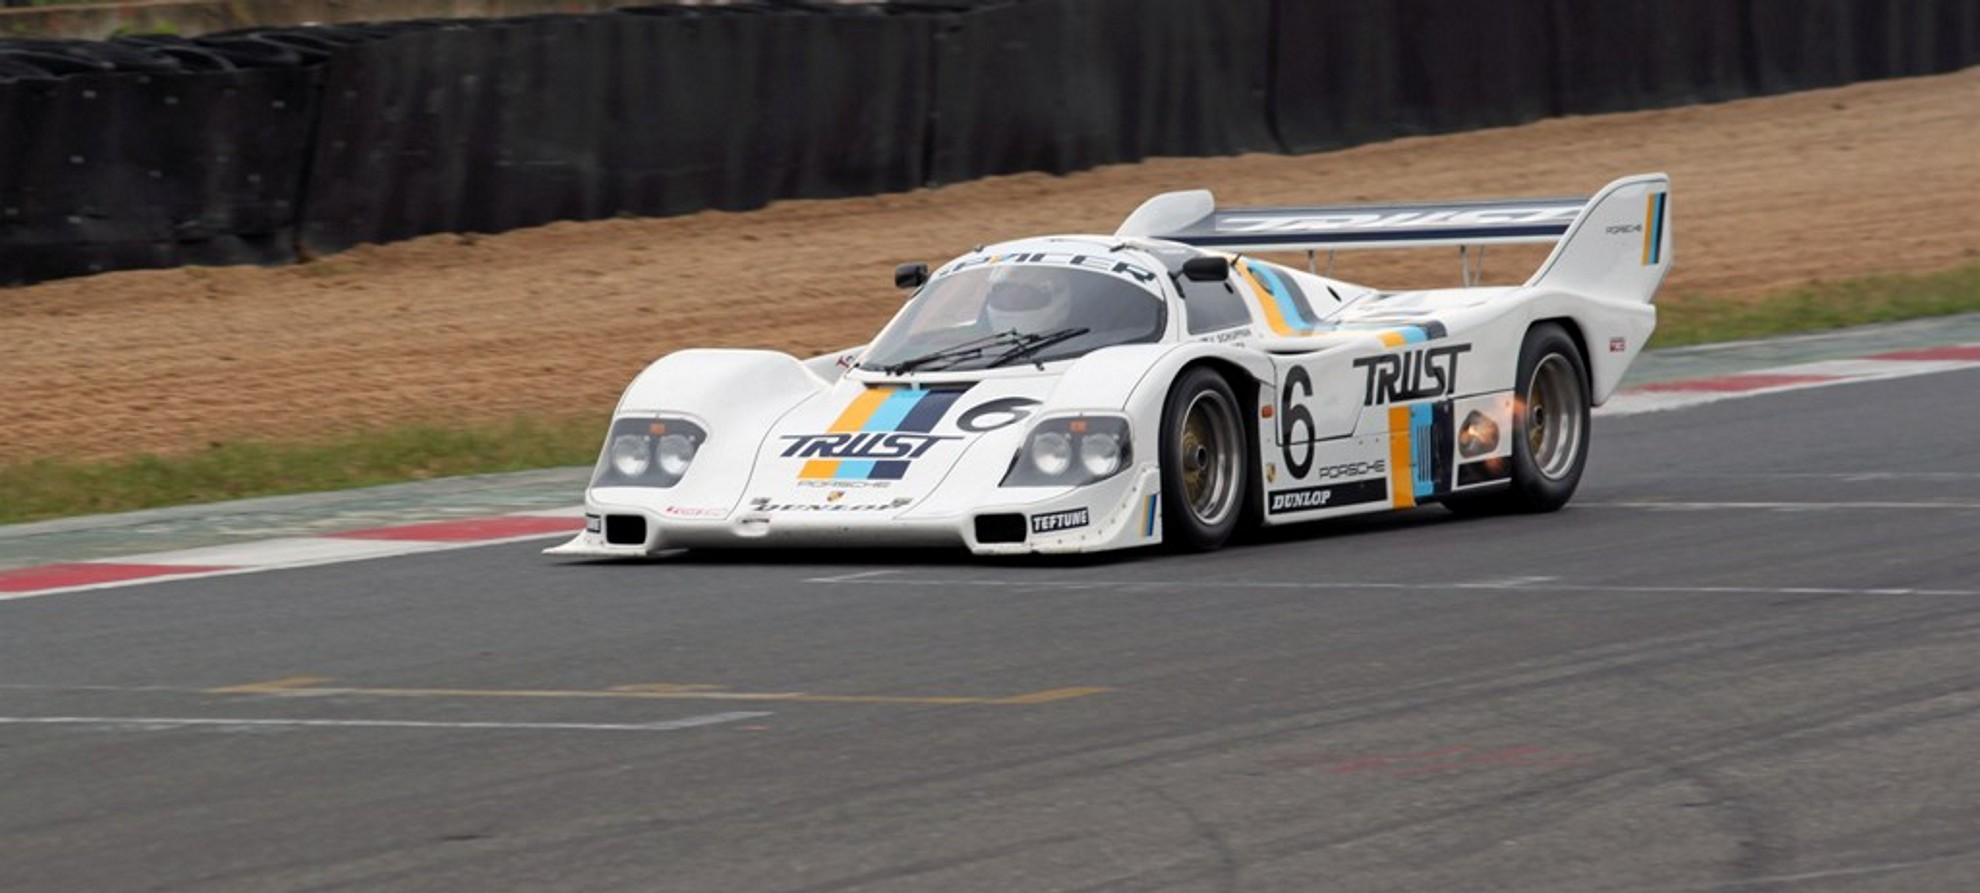 Kyalami Historical Racing